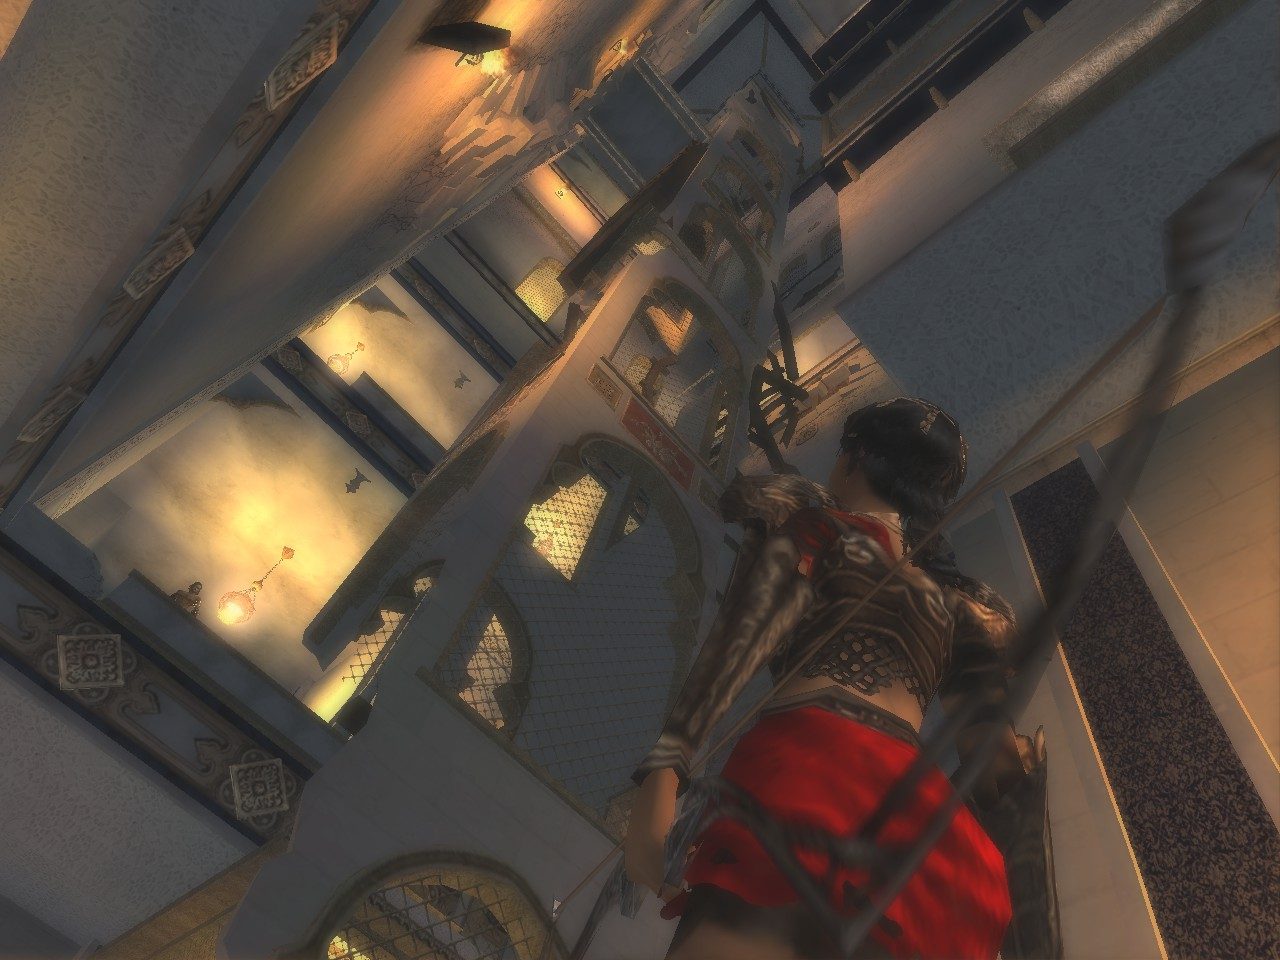 POP3 2014-06-01 20-32-54-33.jpg - Prince of Persia: The Two Thrones